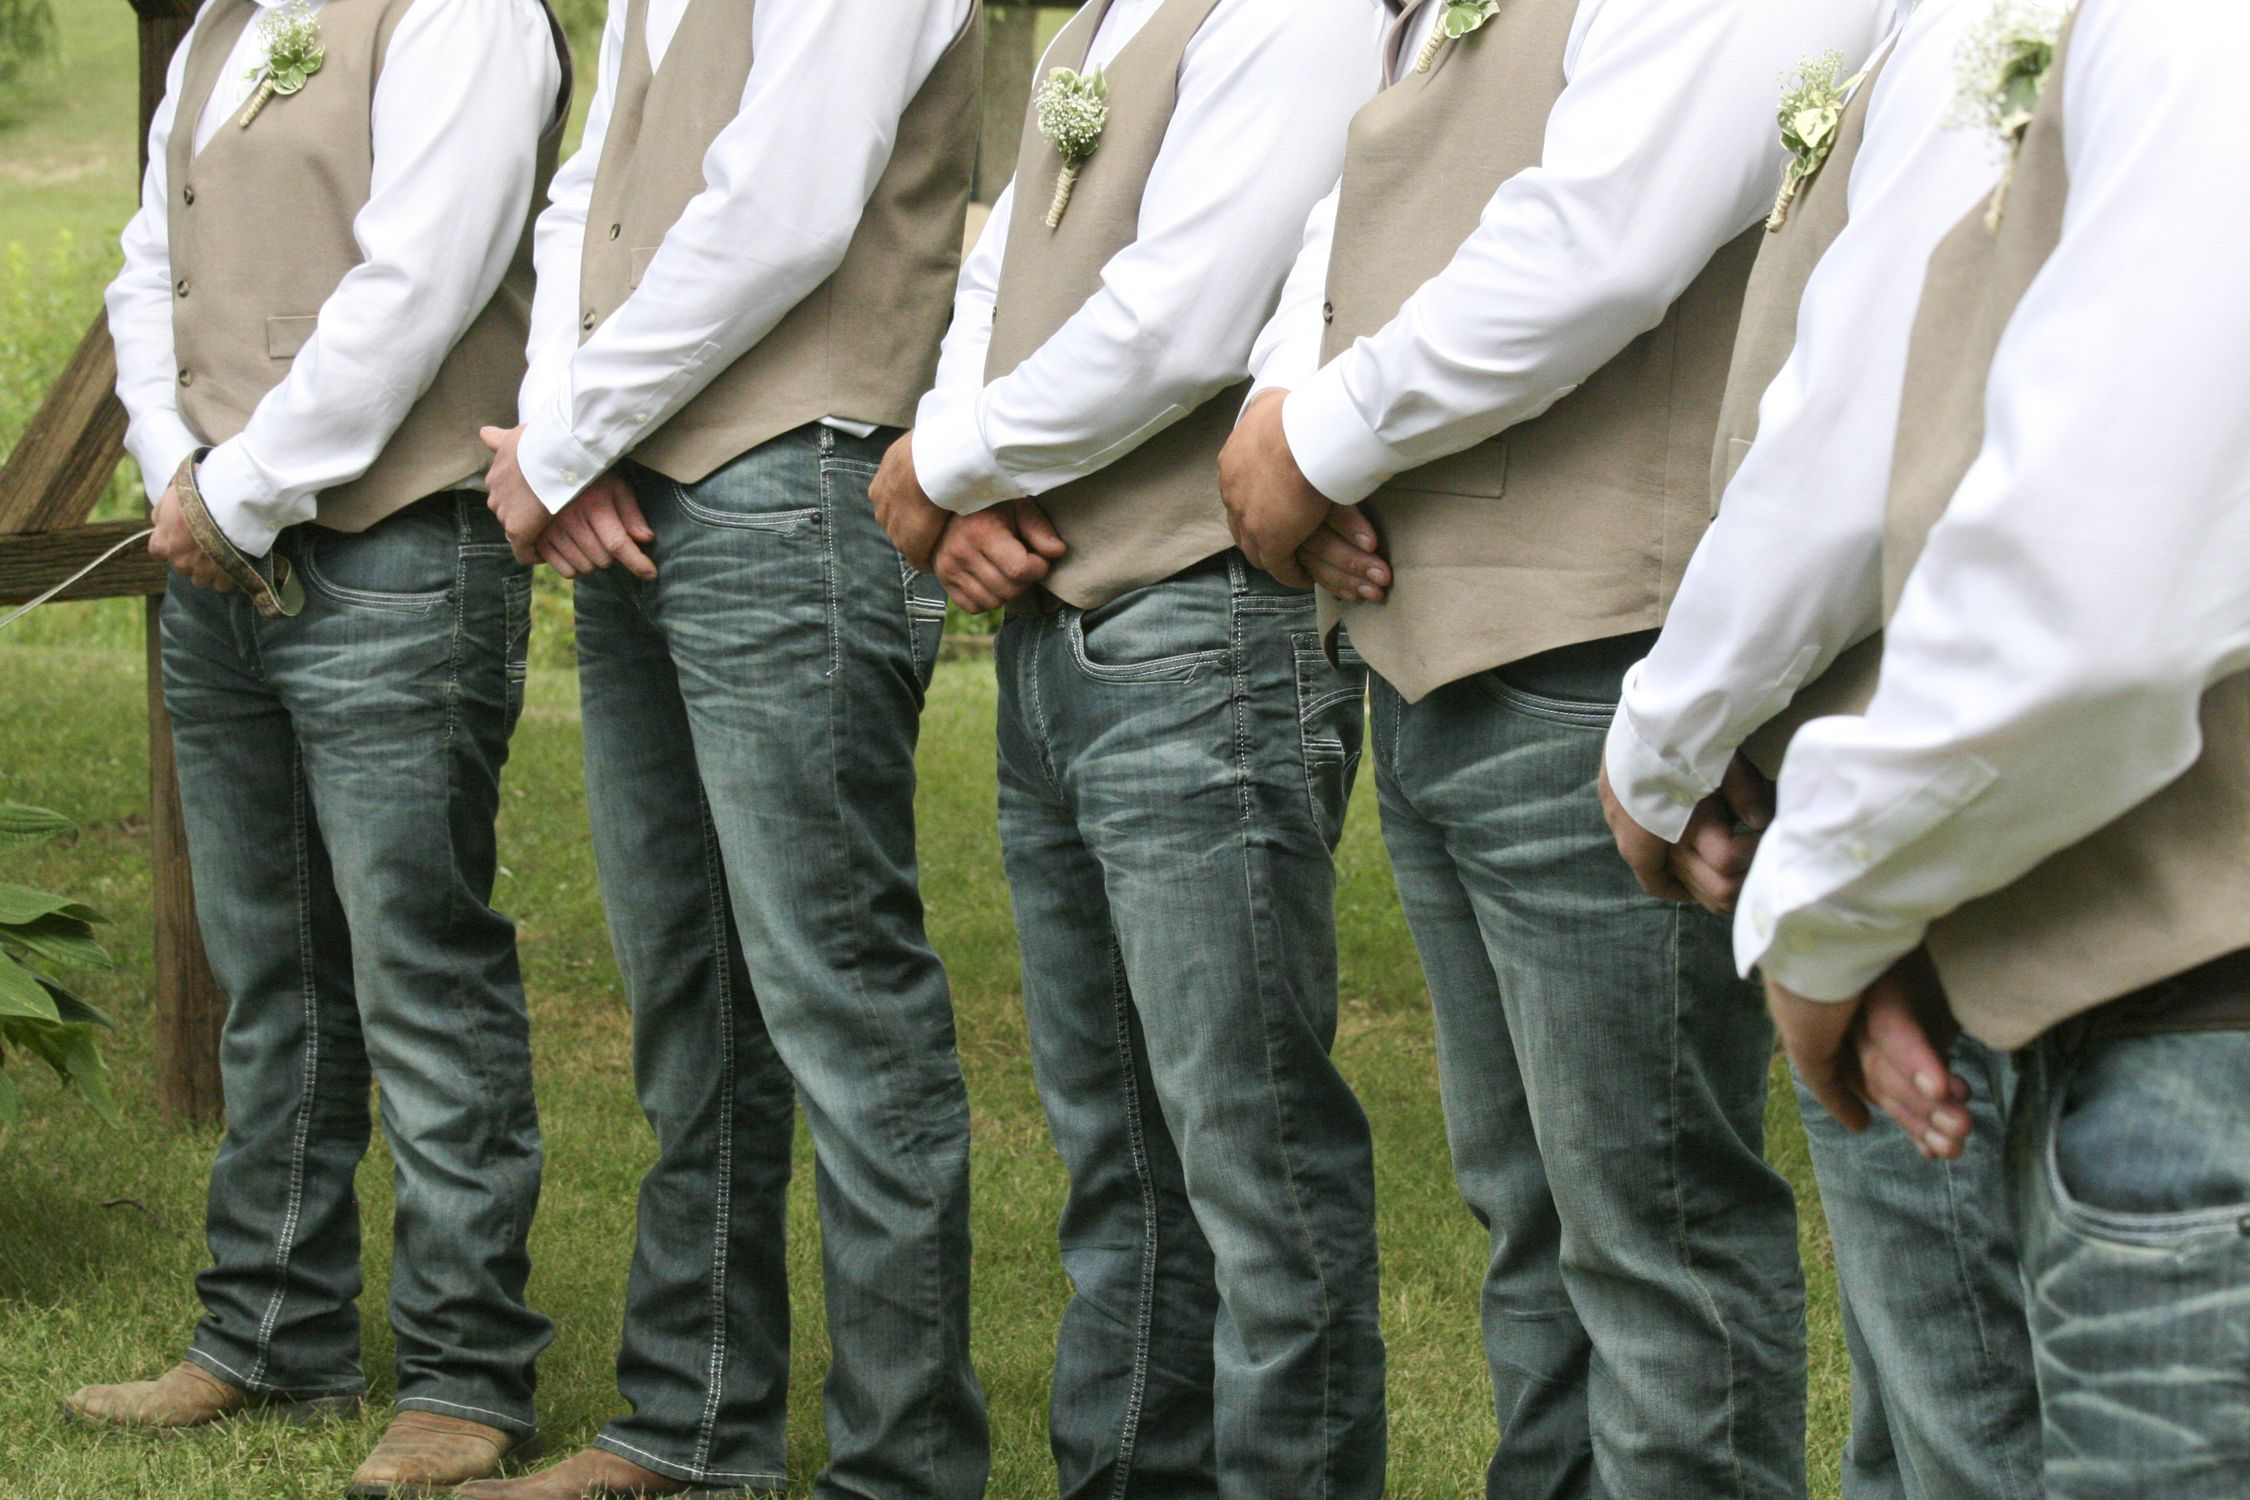 Groomsmen wore jeans, cowboy boots, vests and white dress